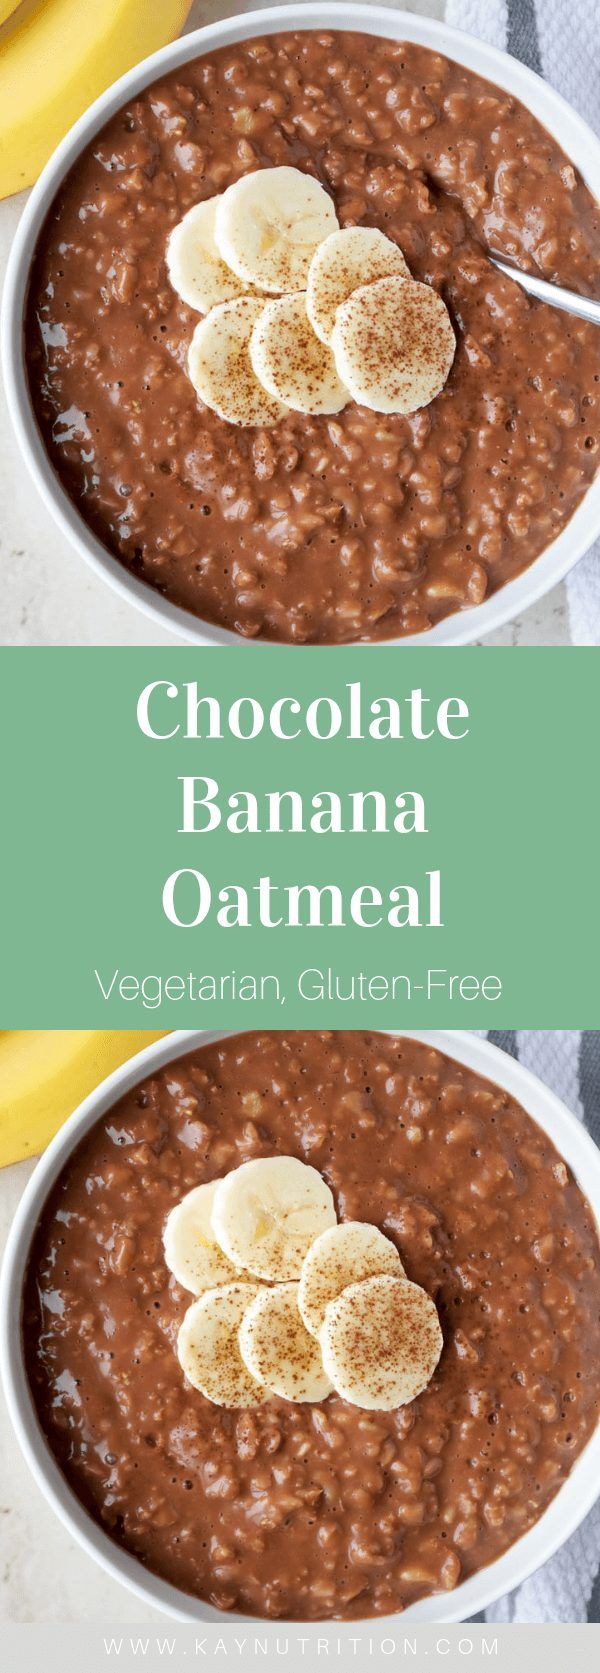 Chocolate Banana Oatmeal images